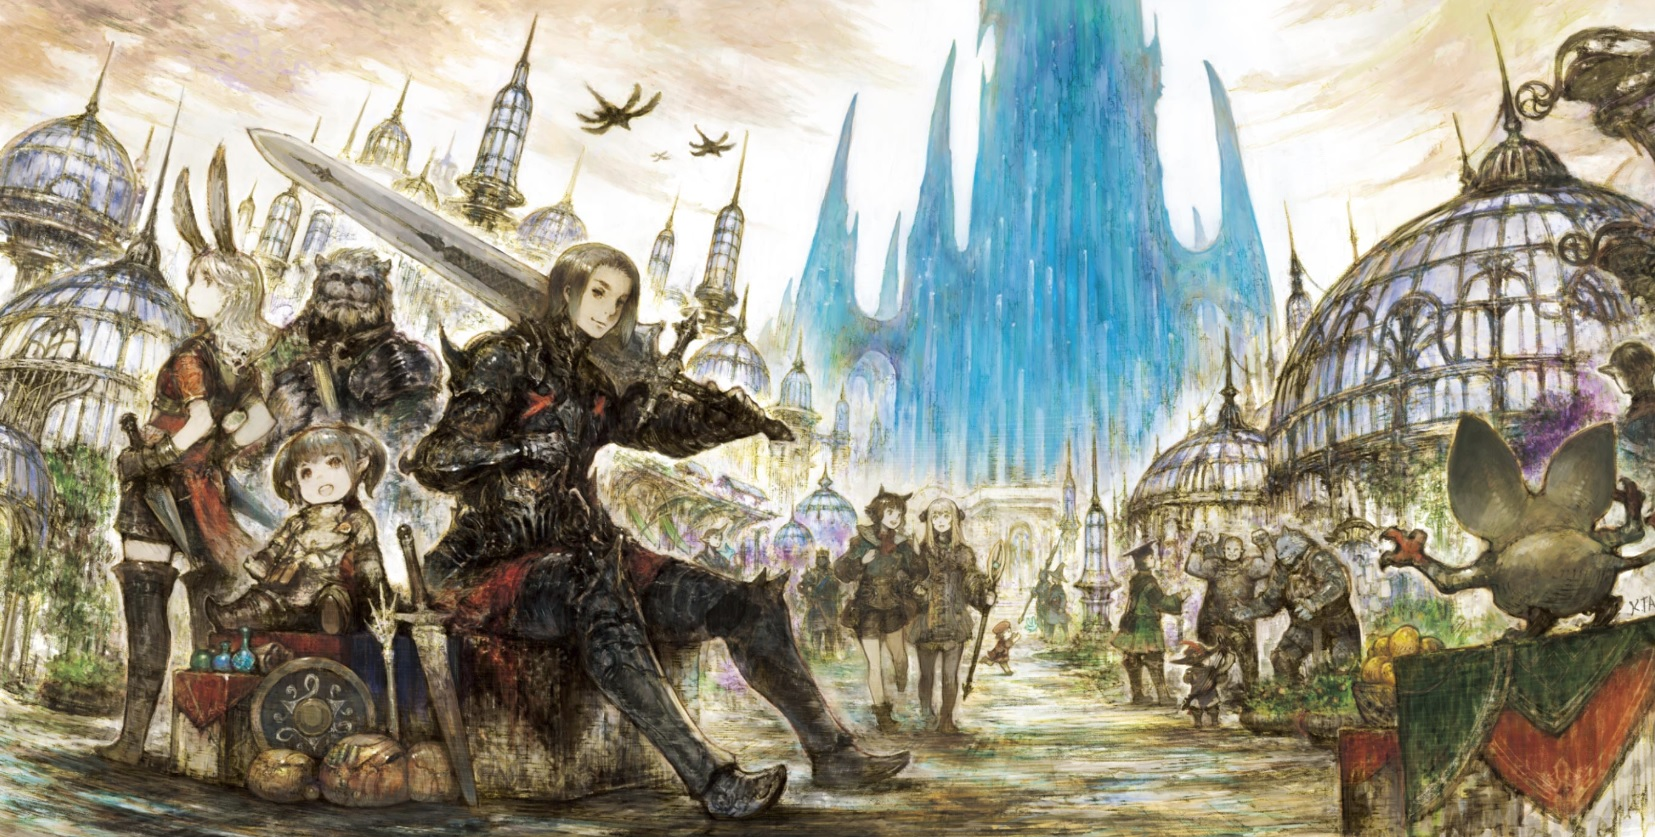 Square Enix shares massive prelim patch notes ahead of Final Fantasy XIV: Shadowbringers launch